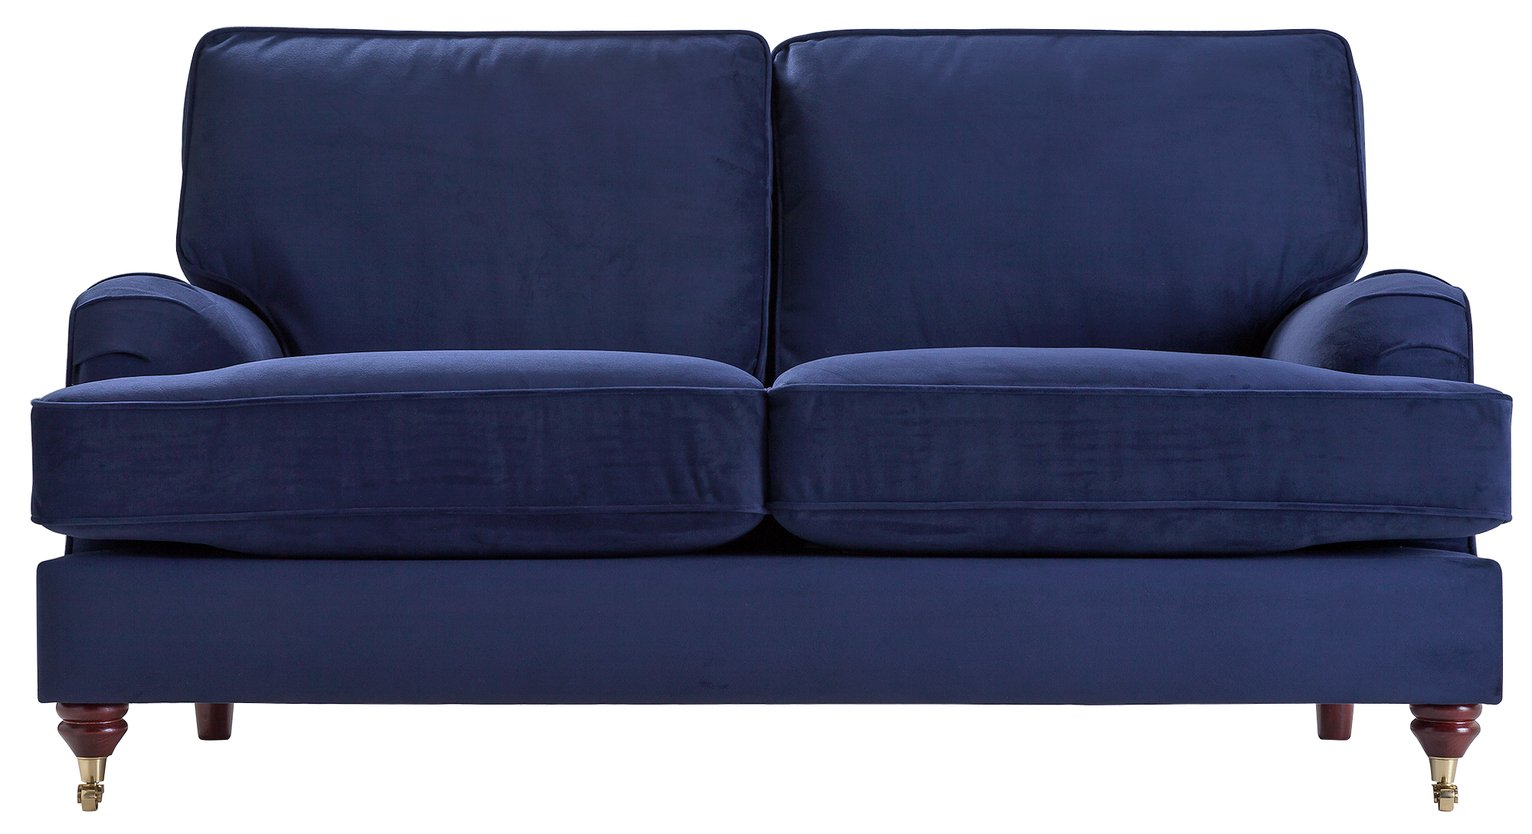 Image of Heart of House Abberton 2 Seater Fabric Sofa - Navy Velvet